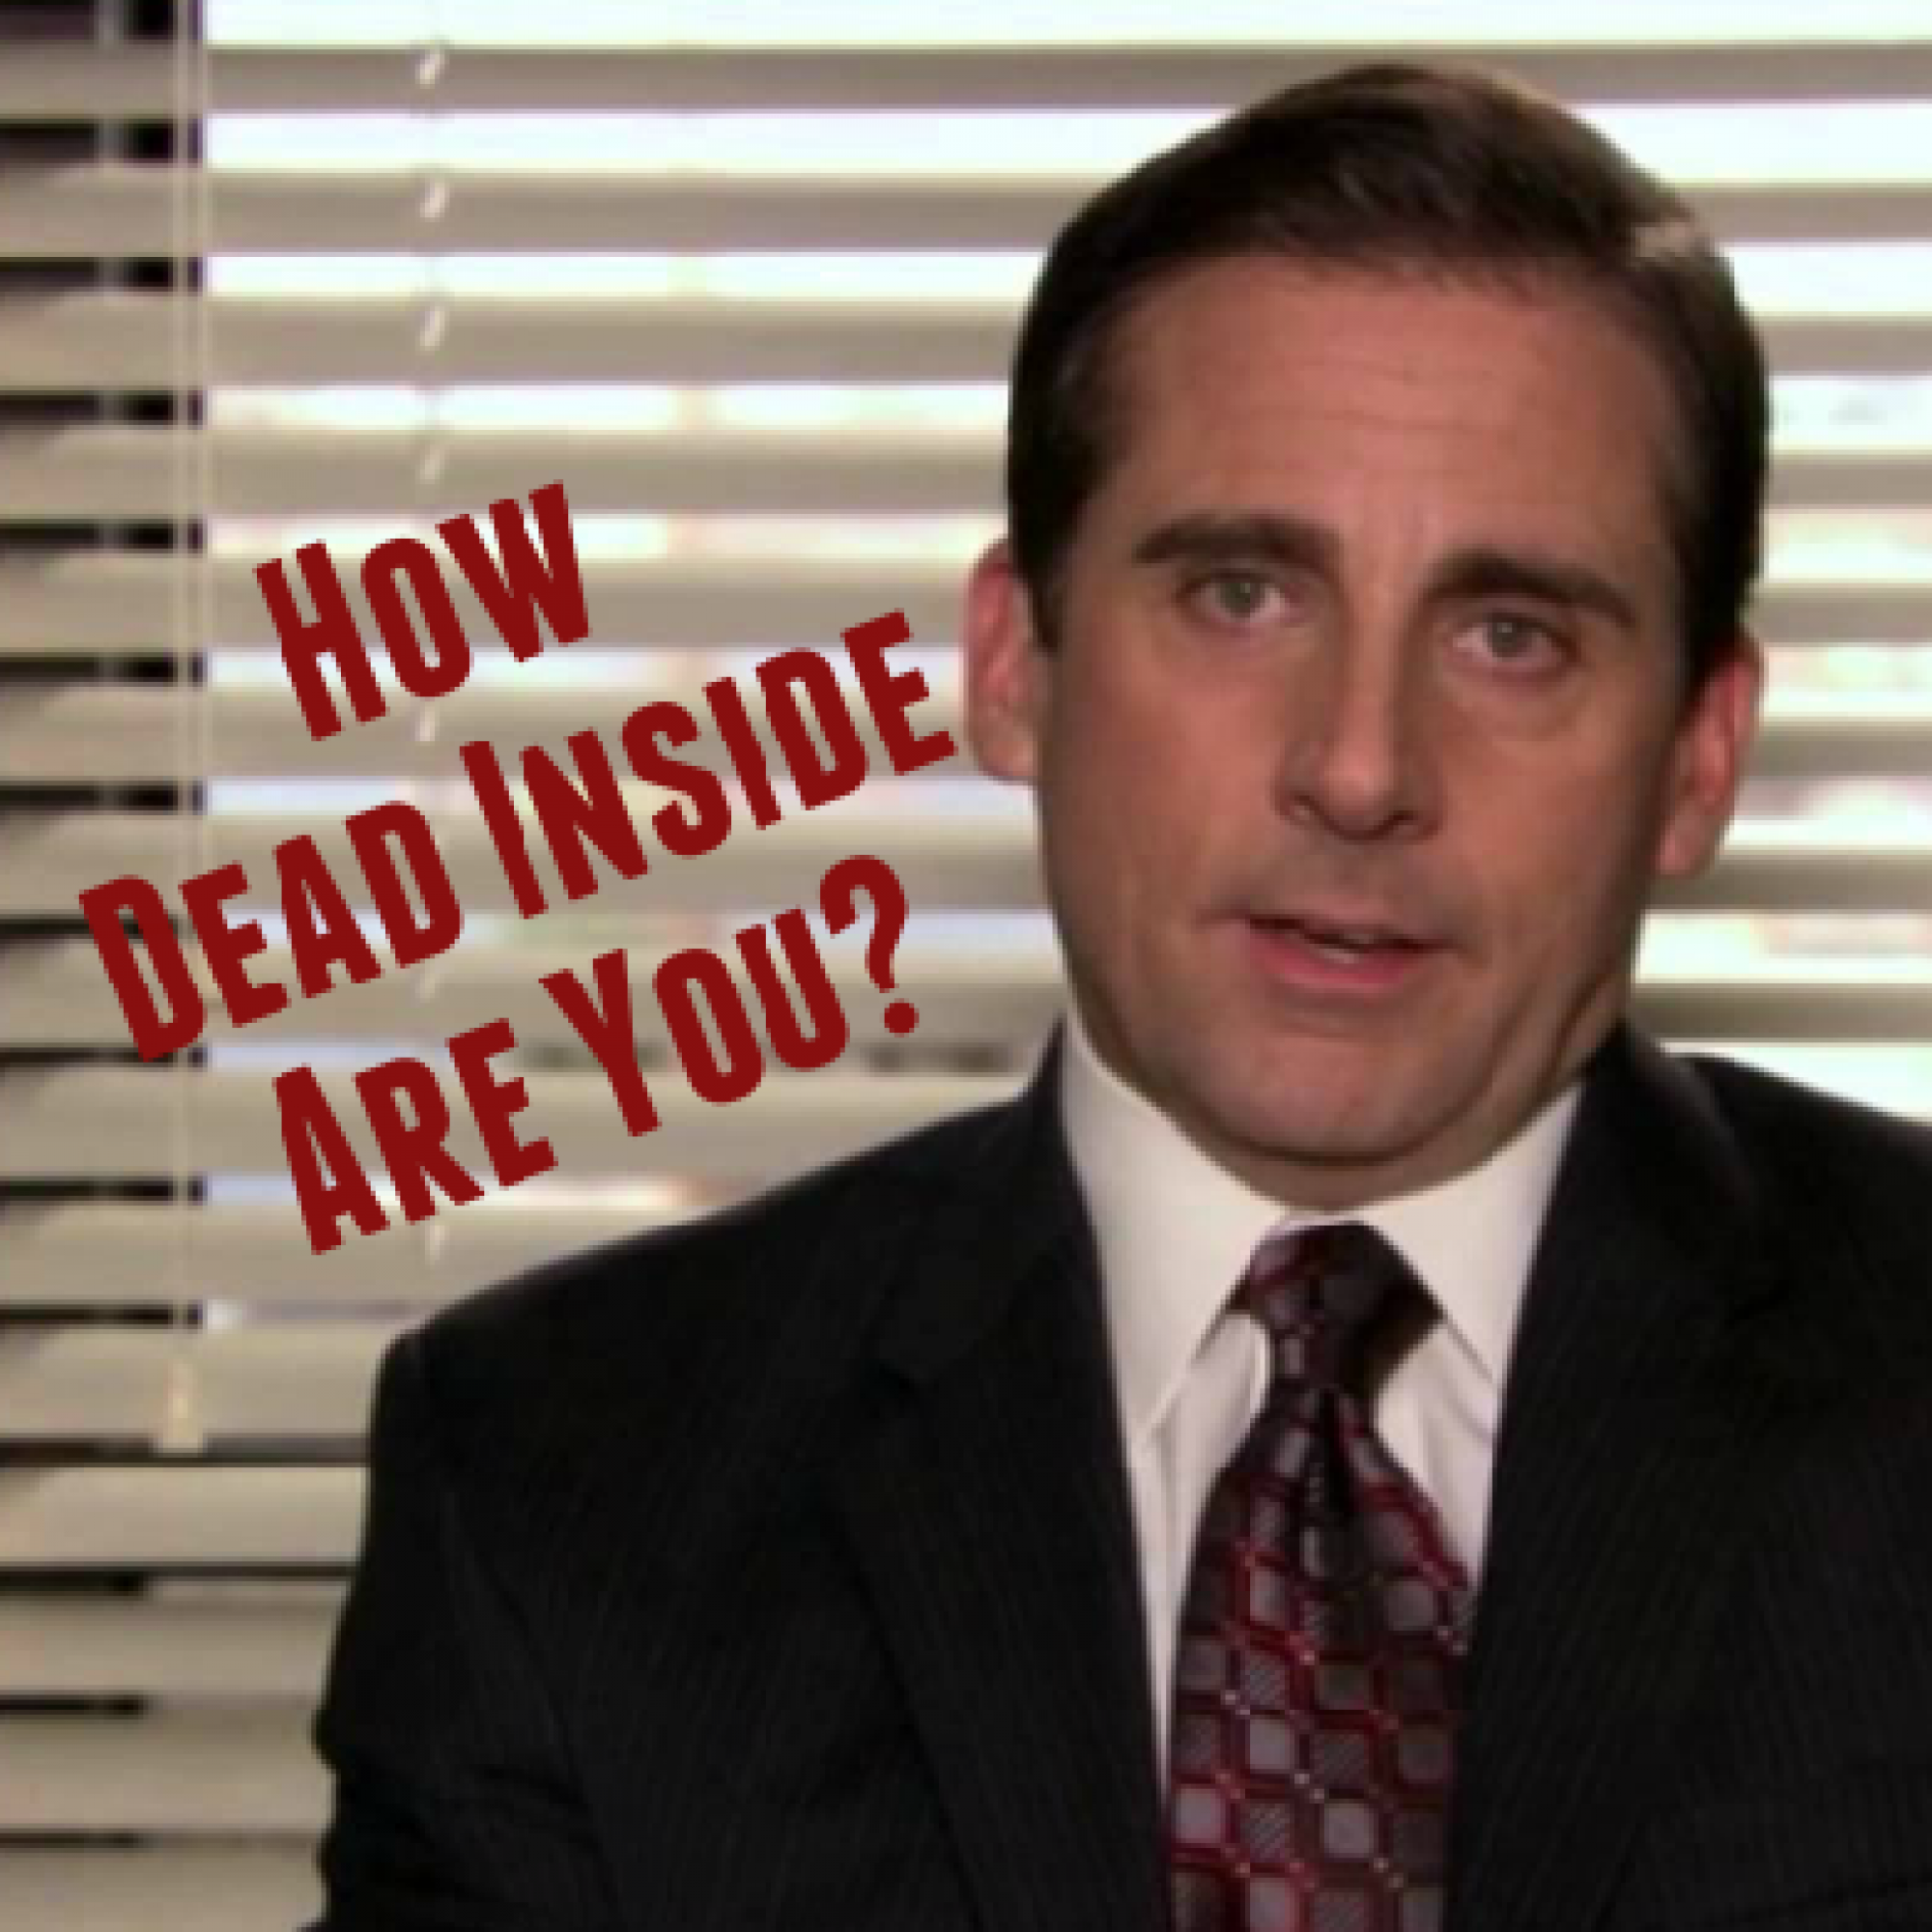 How Dead Inside Are You?